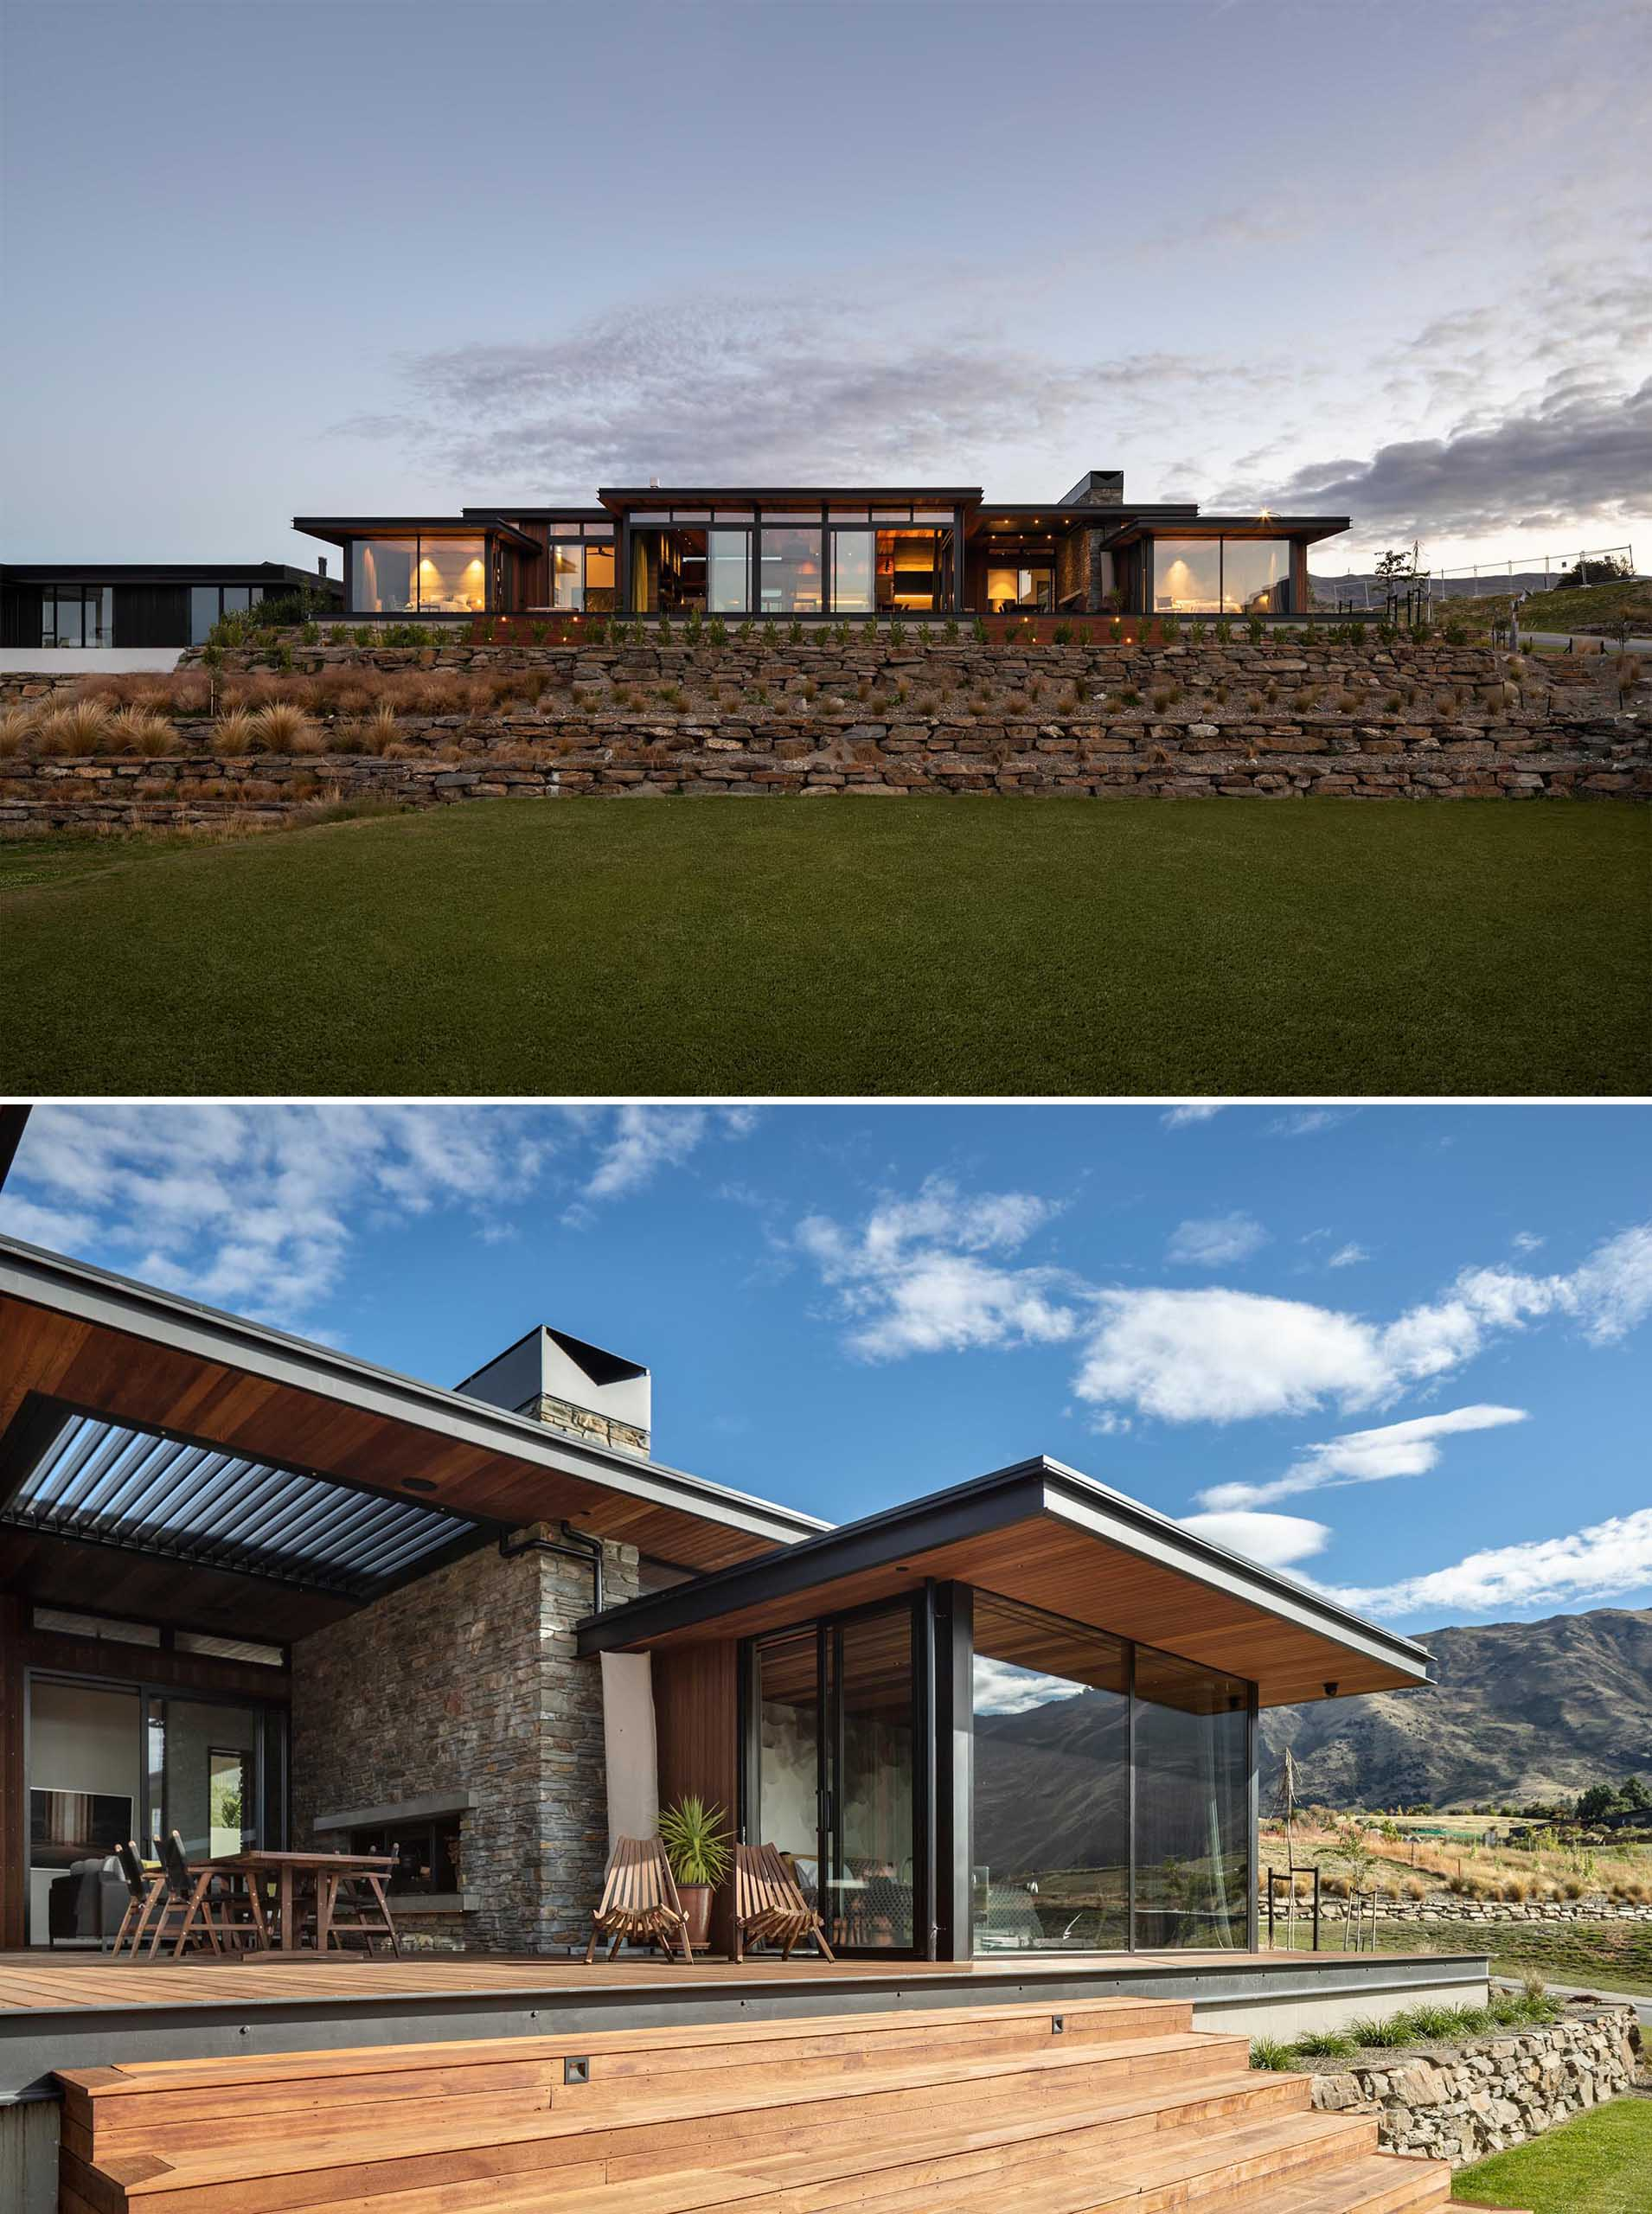 Using a palette of schist, metals and cedar, with exposed structural steel fascias to add a touch of grit, this modern house appears in keeping with the alpine and rural landscapes of the area.